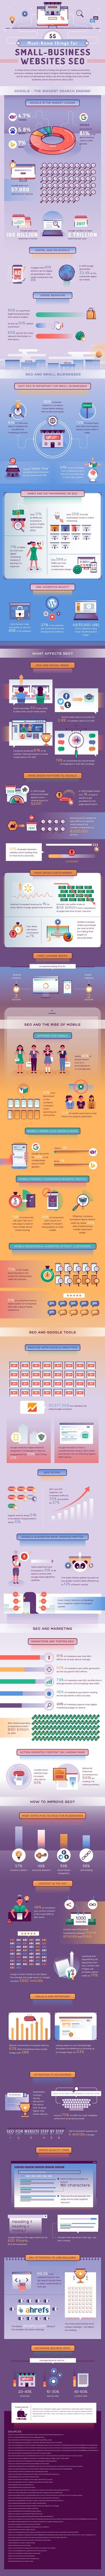 55 Must-Know Stats About SEO For Small Businesses - #infographic / Digital Information World